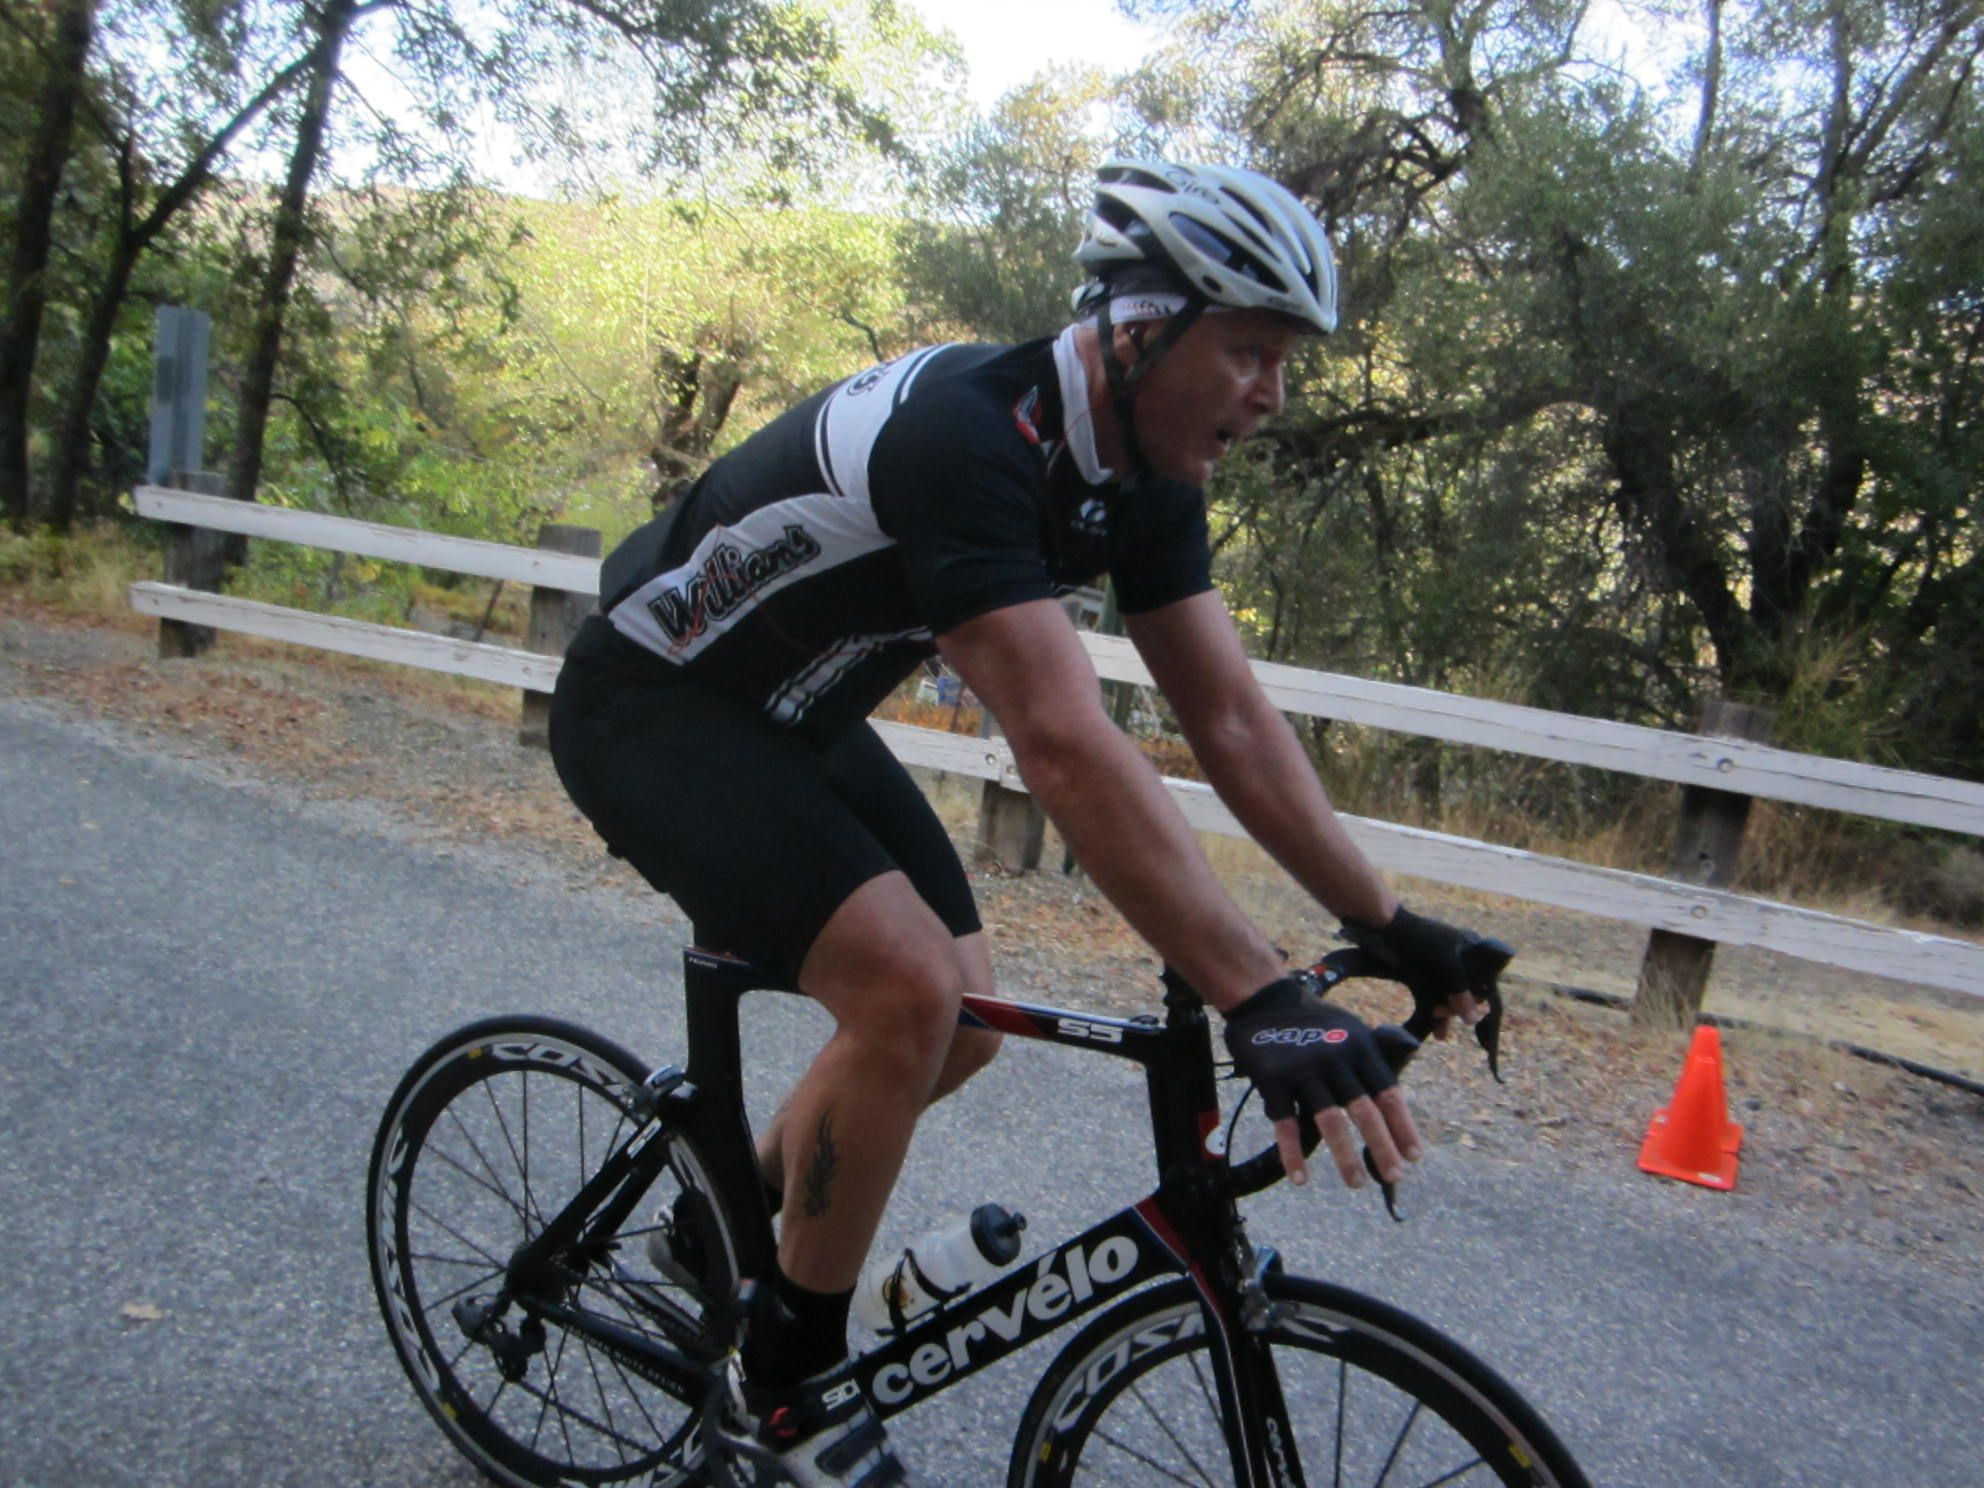 This Saturday is Event #11 in the 19-Event 2012 Chico Hill Climb Time Trial Series - The Hors Category Vilas Road Uphill Time Trial! Hope to see ya out there!  http://racechico.com/race/vilas-road-uphill-time-trial-2012-11-10